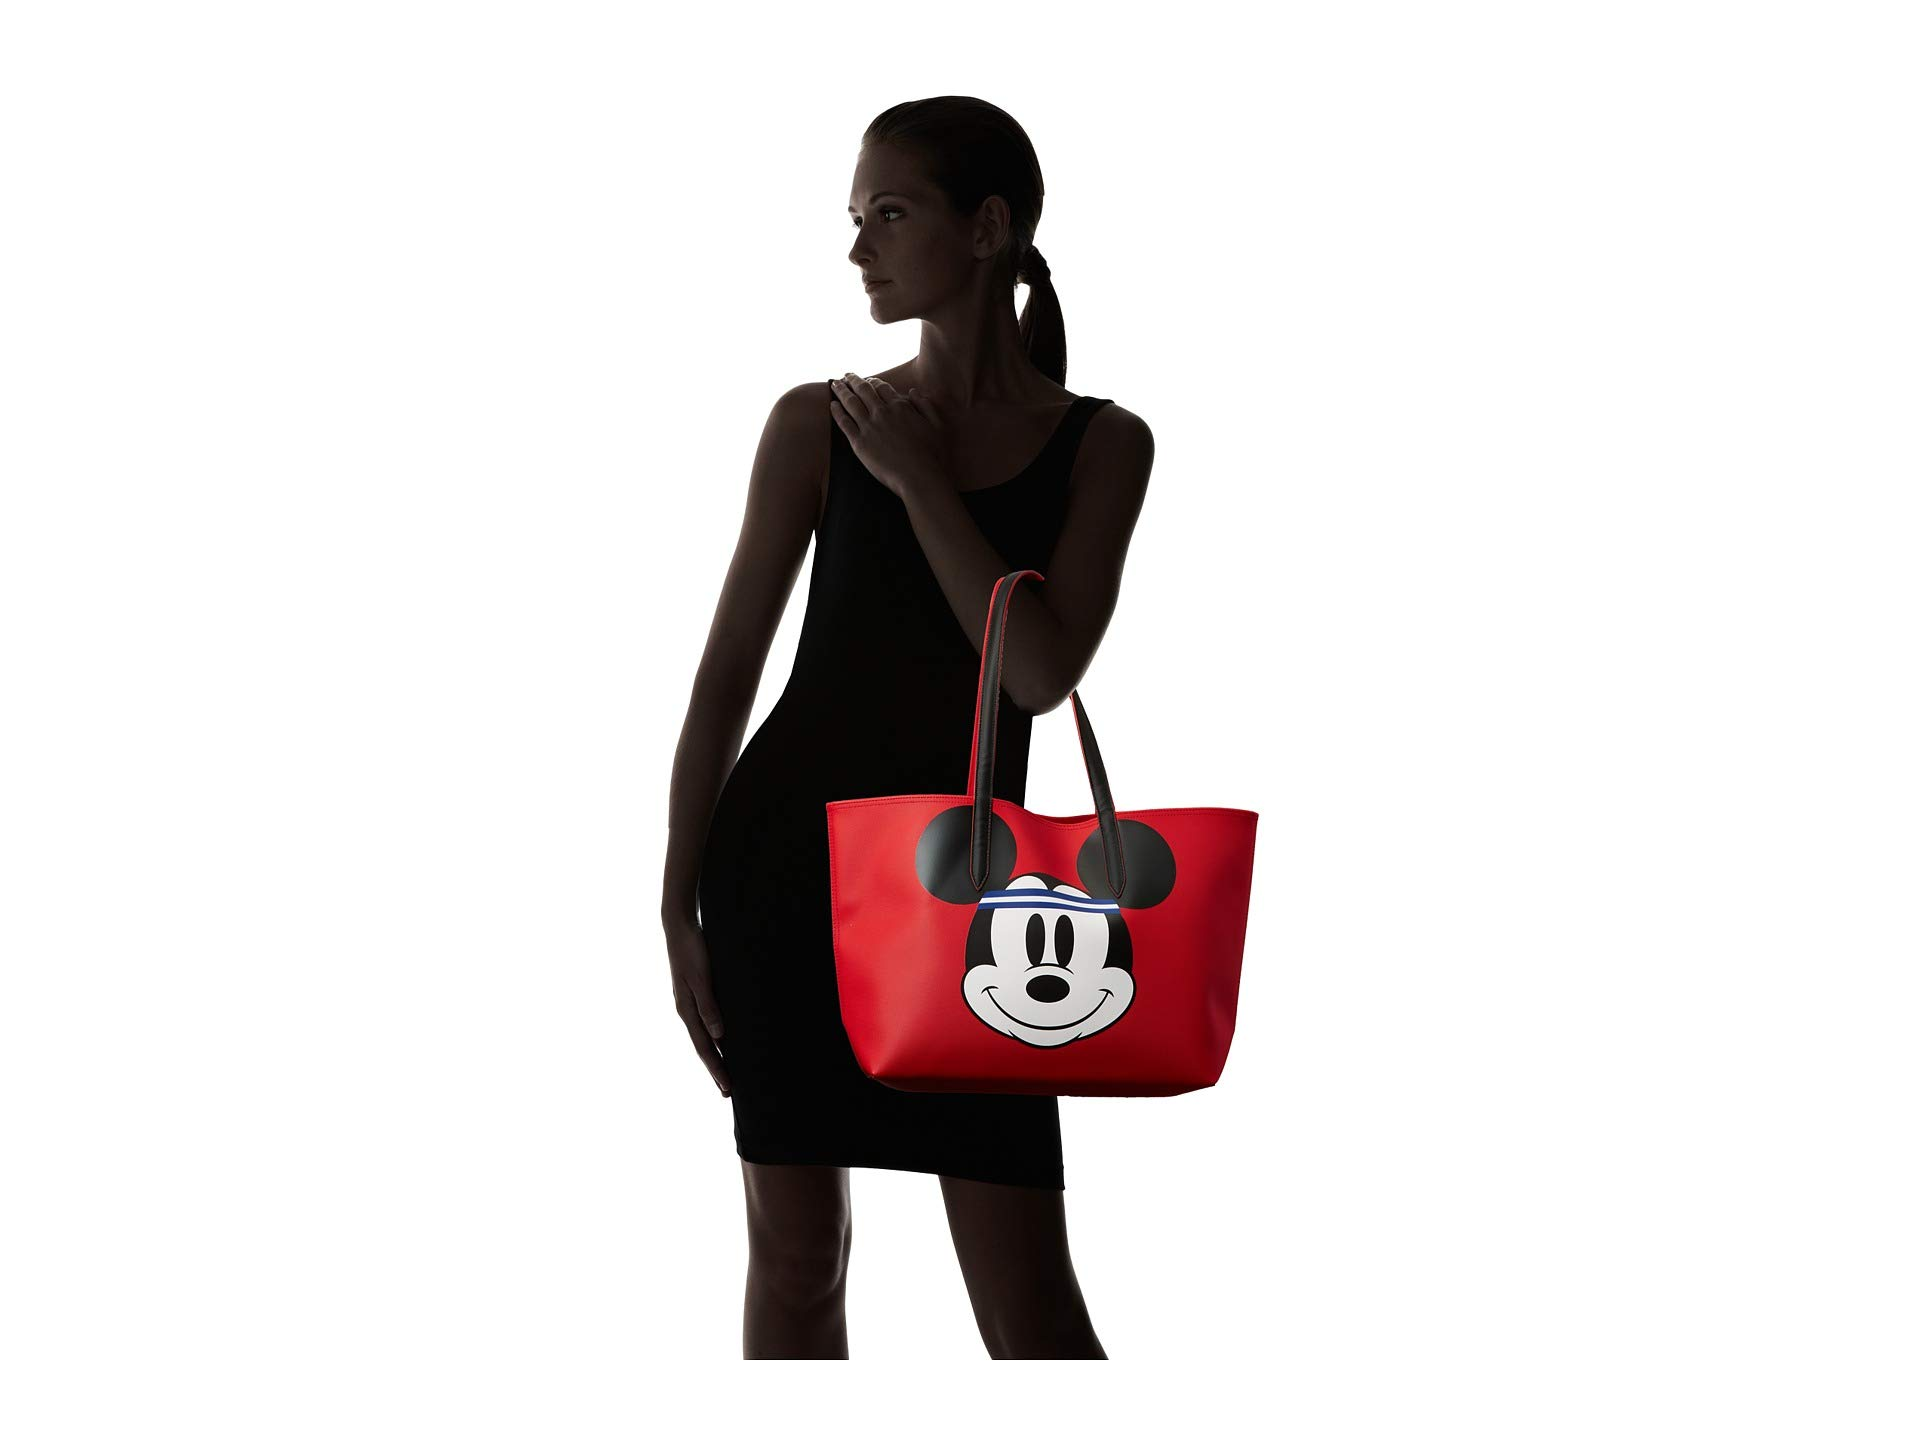 Mickey Mickey Shopping Mickey Red Lacoste Shopping Bag Shopping Bag Lacoste Lacoste Red Lacoste Bag Red nwqpzHqOx